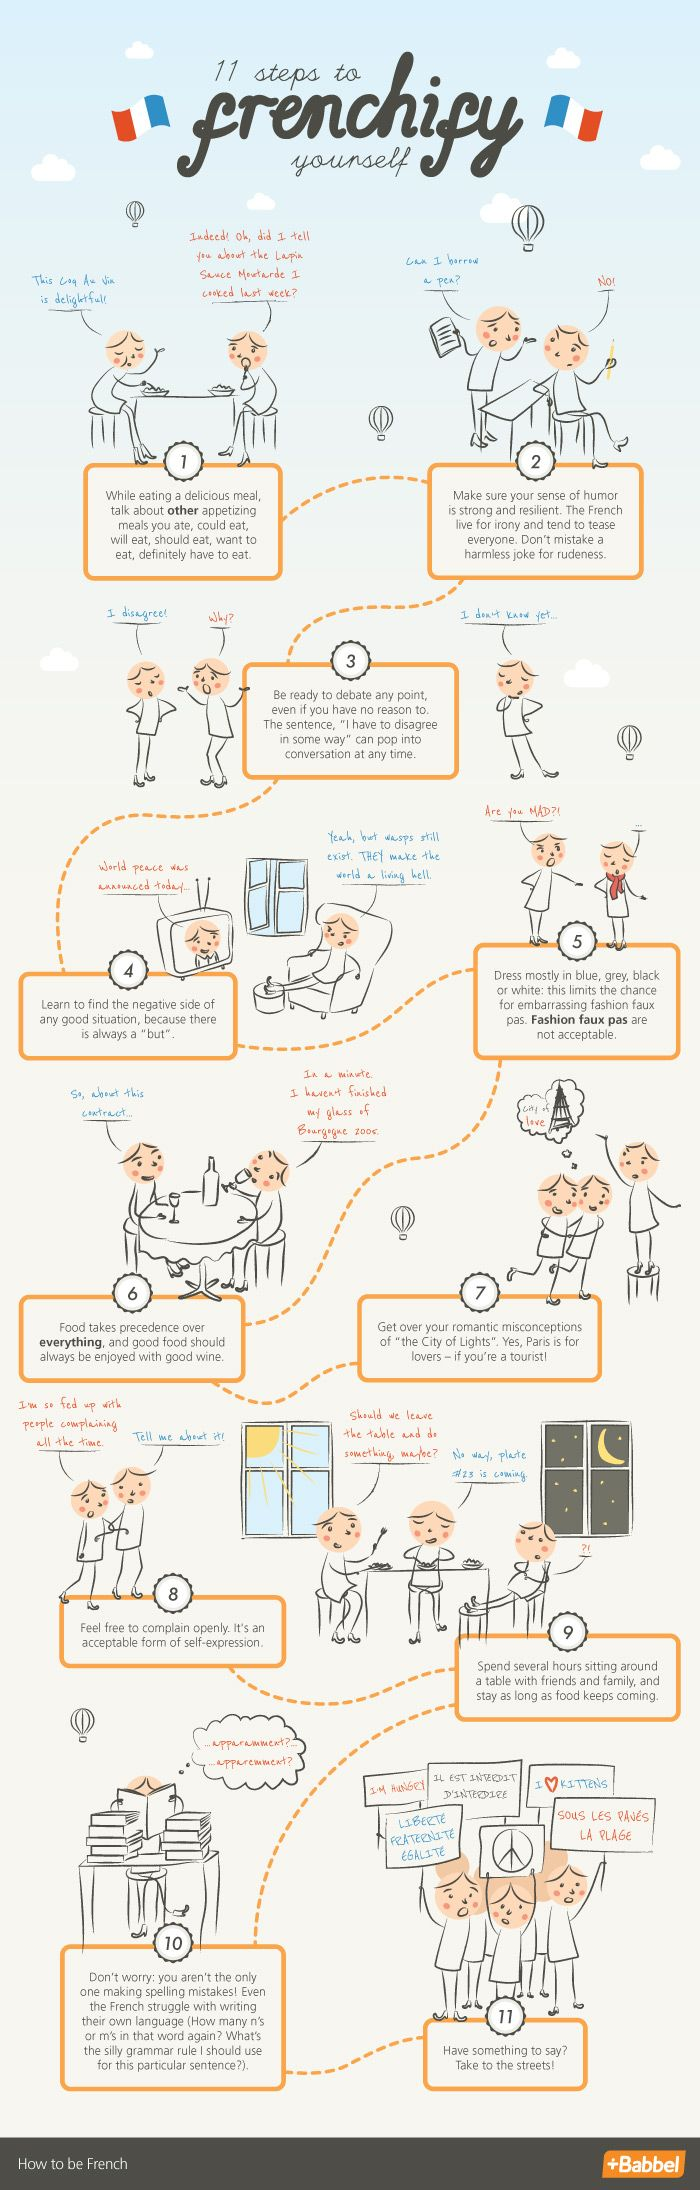 What does it really mean to be French? More romantic, sophisticated and cool? Forget all the stereotypes, and follow these 11 steps to Frenchify yourself!